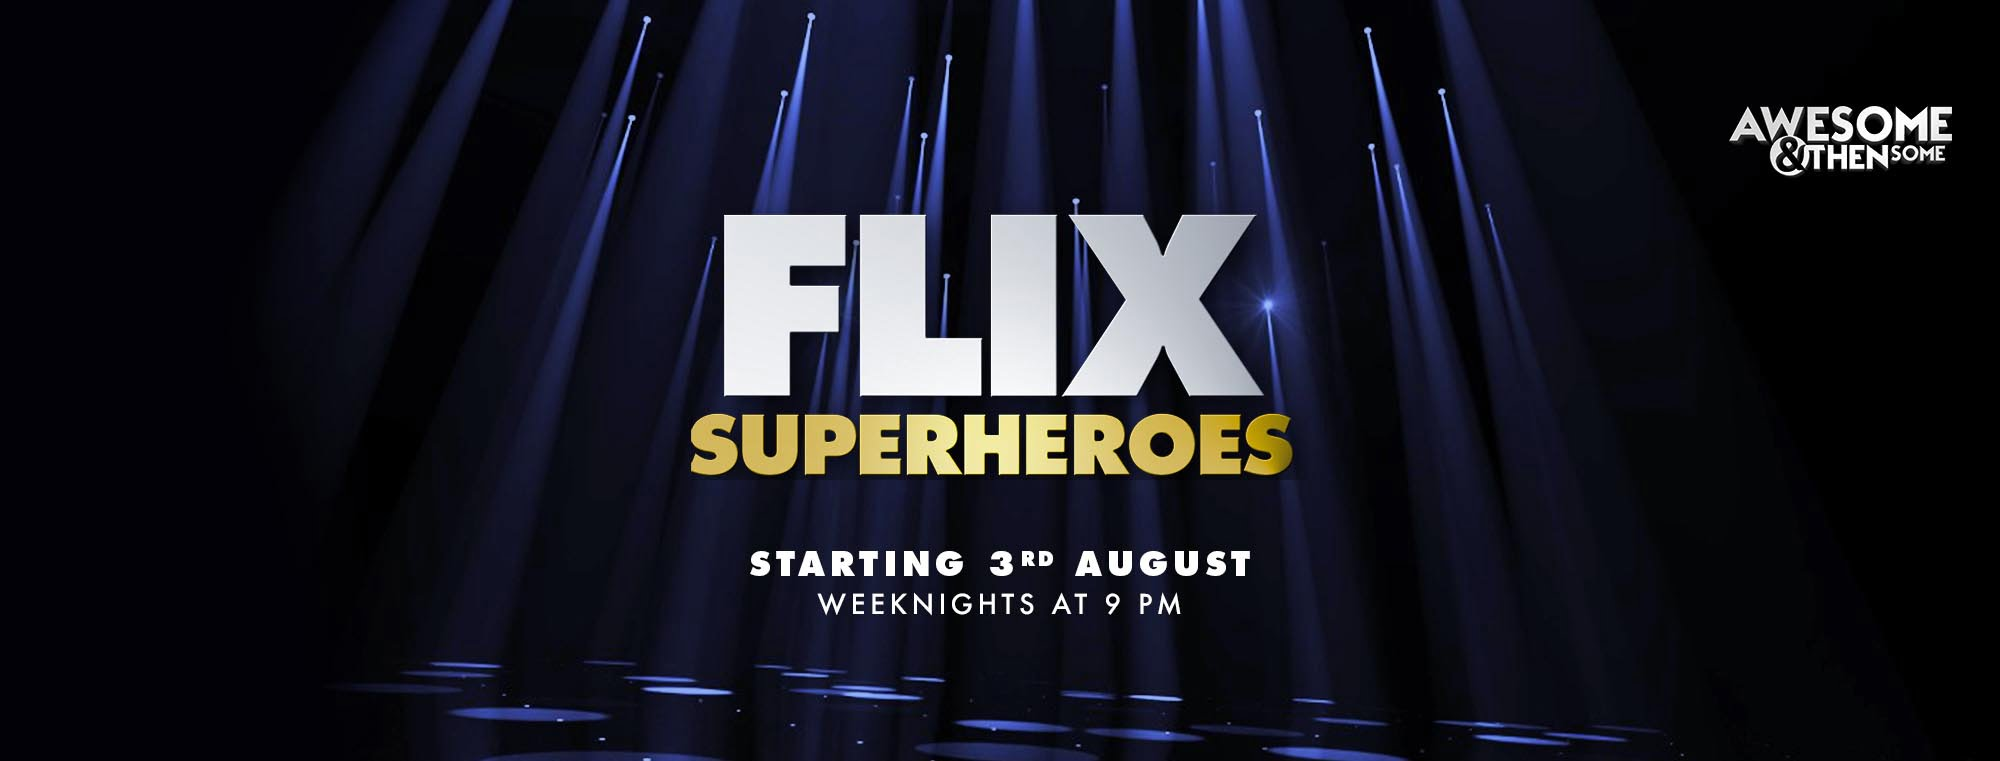 Discover the Humans behind the Superhumans who are #AwesomeAndThenSome with 'Flix Superheroes Chapter 2' on &flix